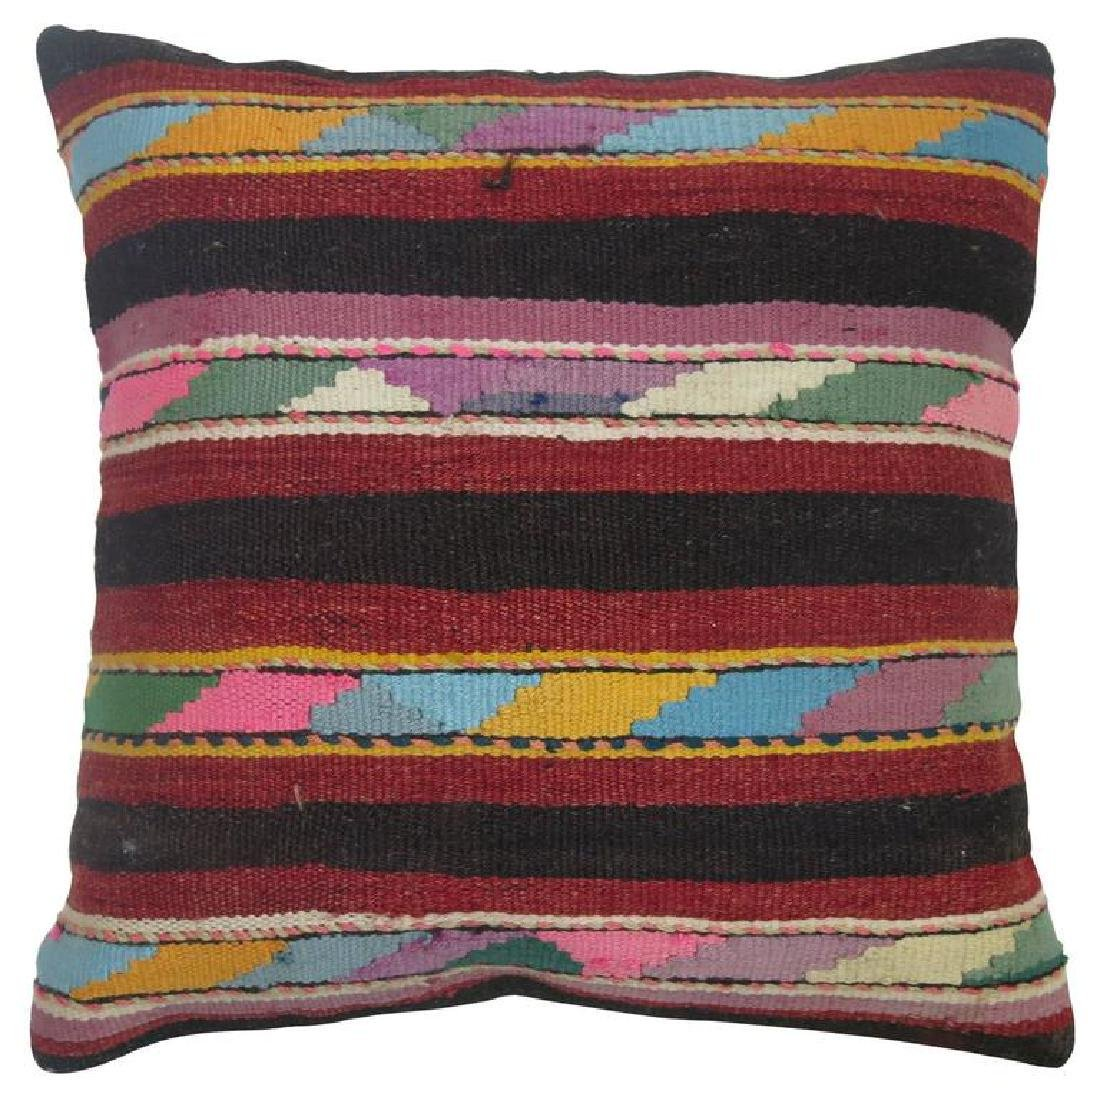 Colorful Kilim Rug Pillow 1.7x1.8